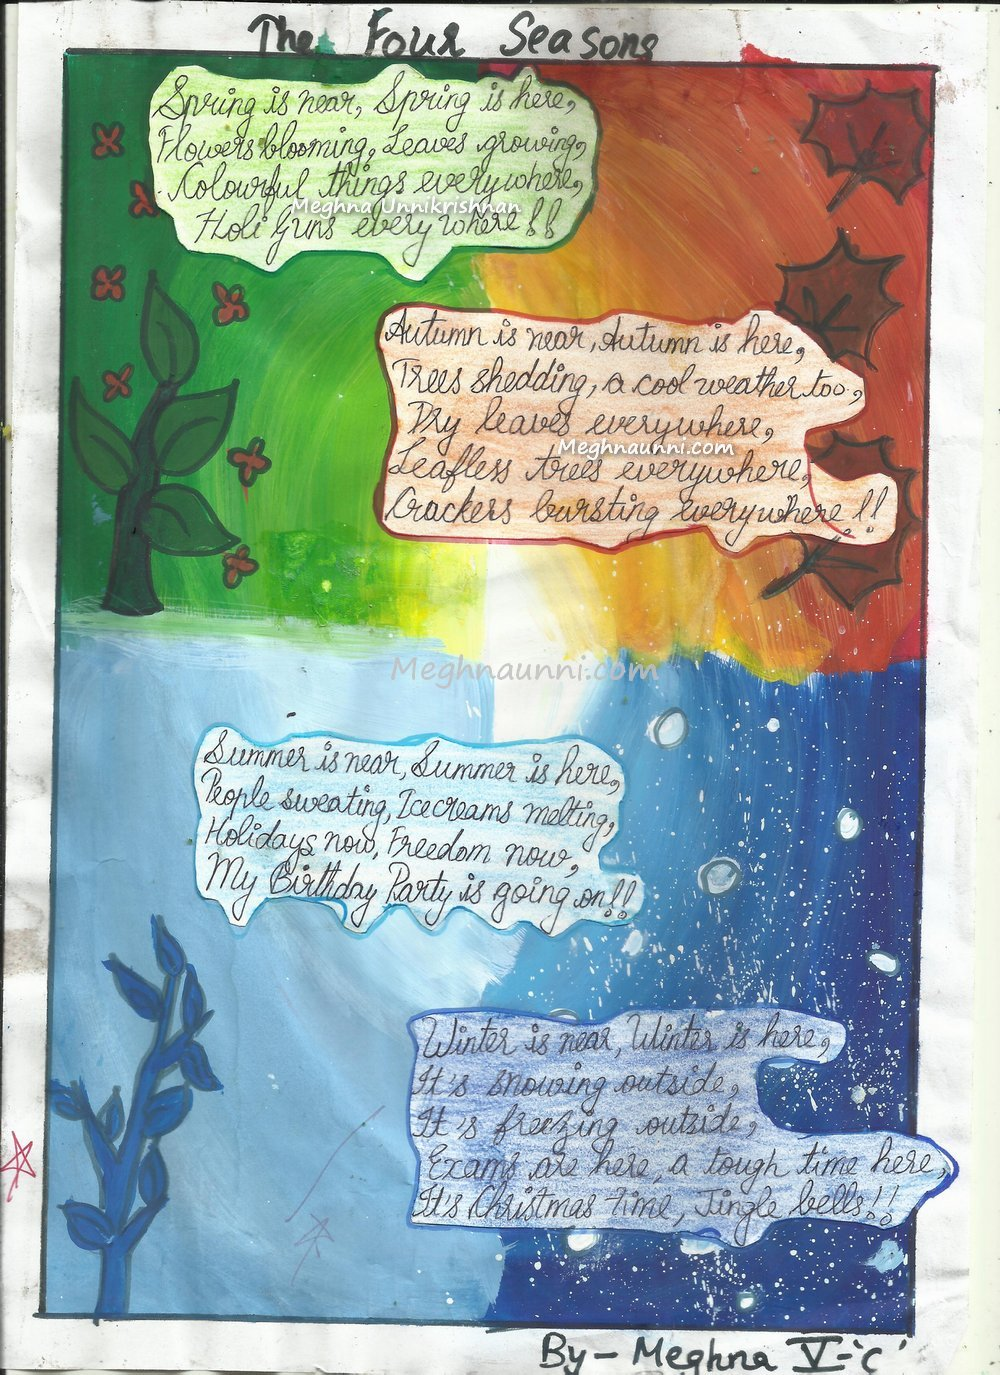 My Poem 'Four Seasons' done for a School Project